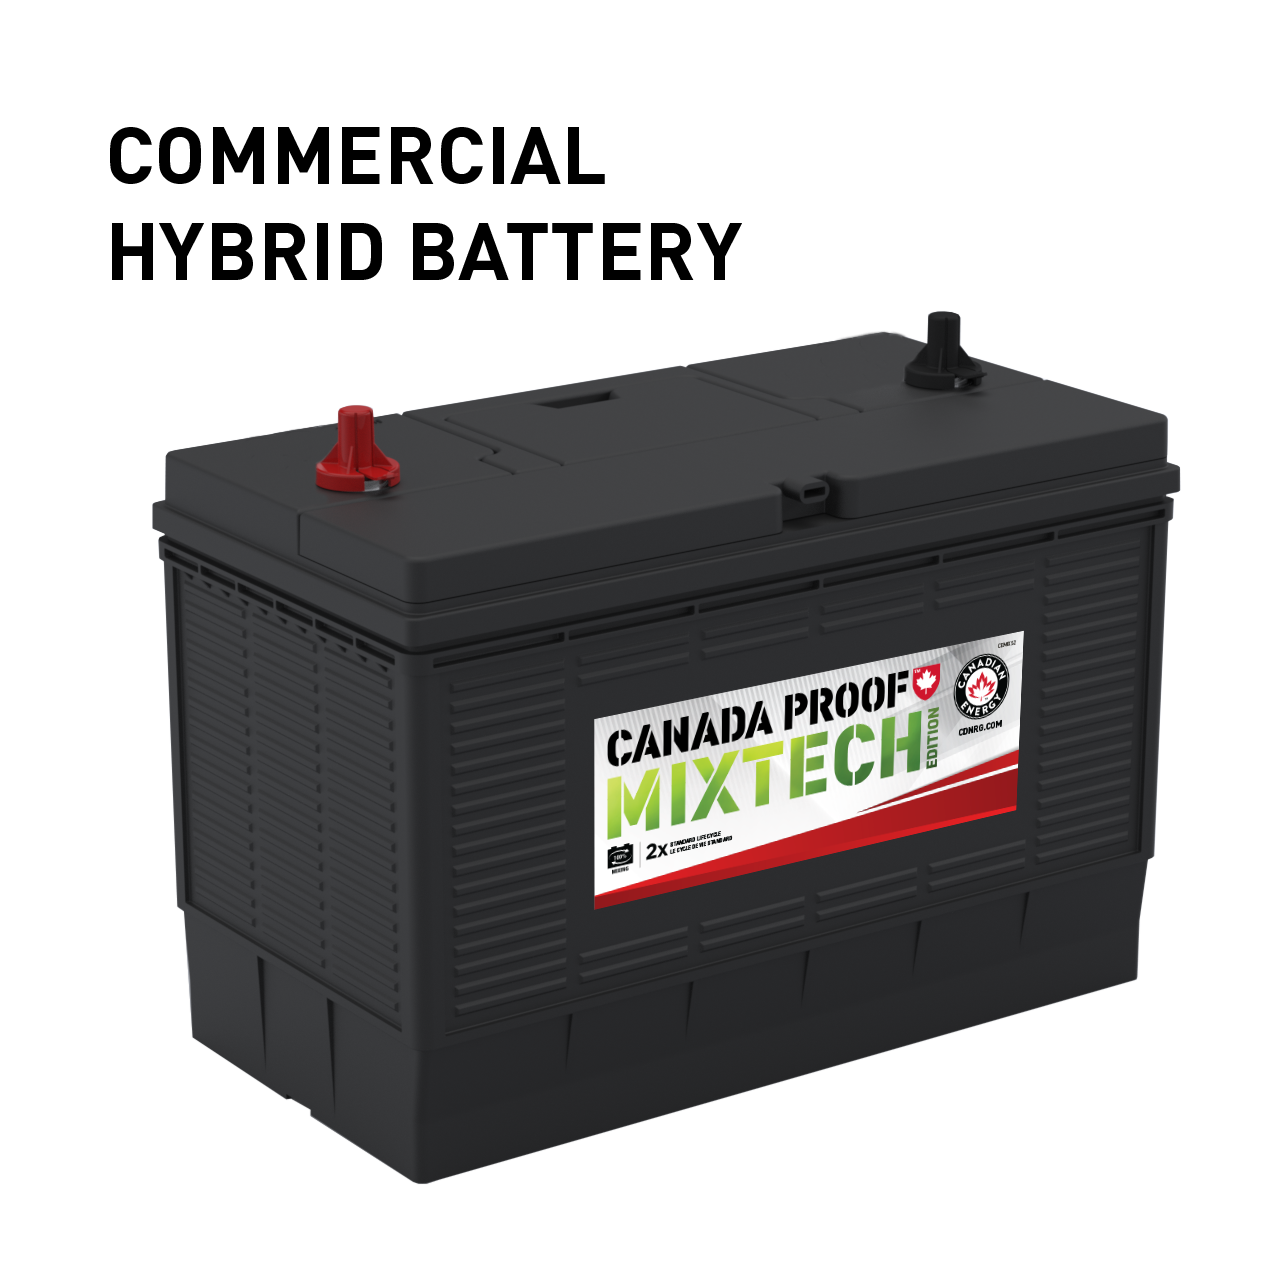 CP MIXTECH Commercial Hybrid Battery